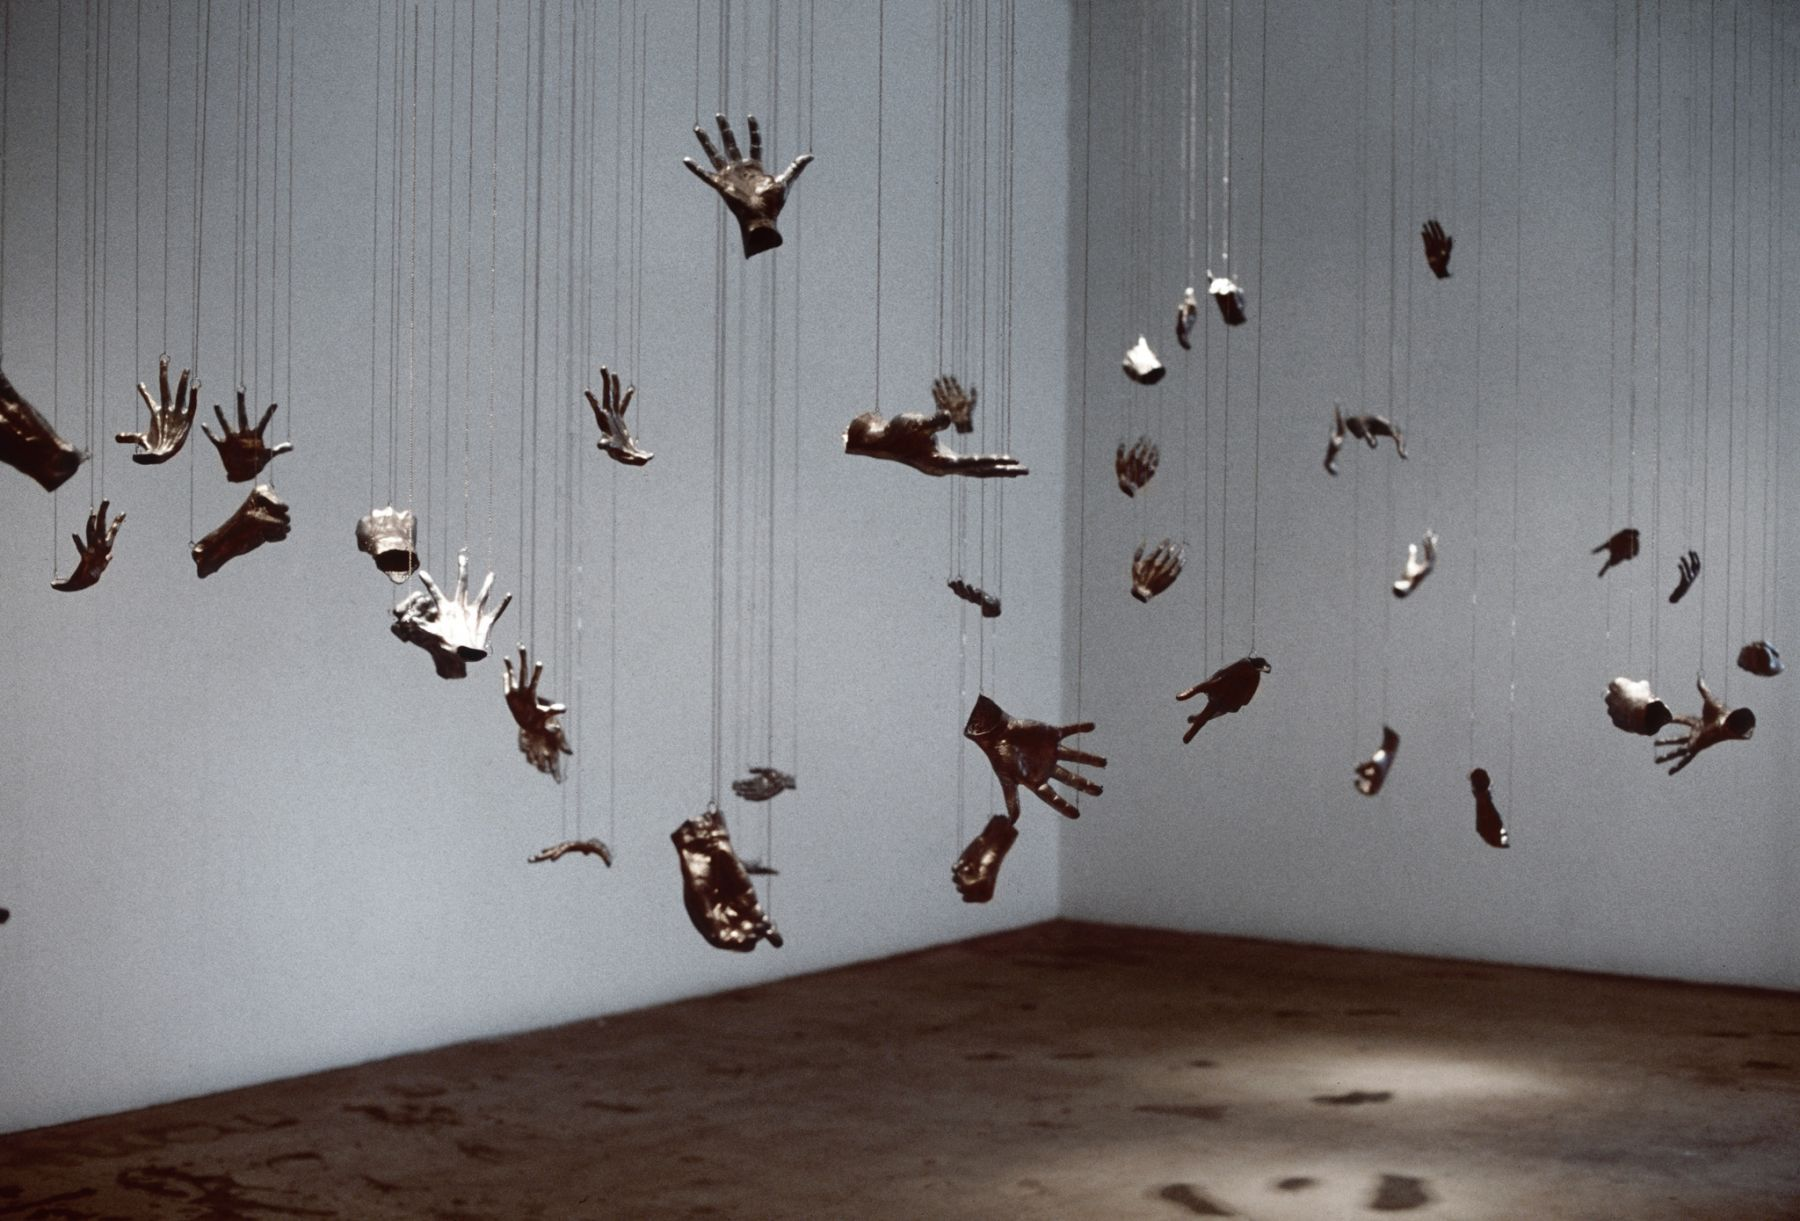 Liz Larner, Installation view: without words, 303 Gallery, New York, 1994